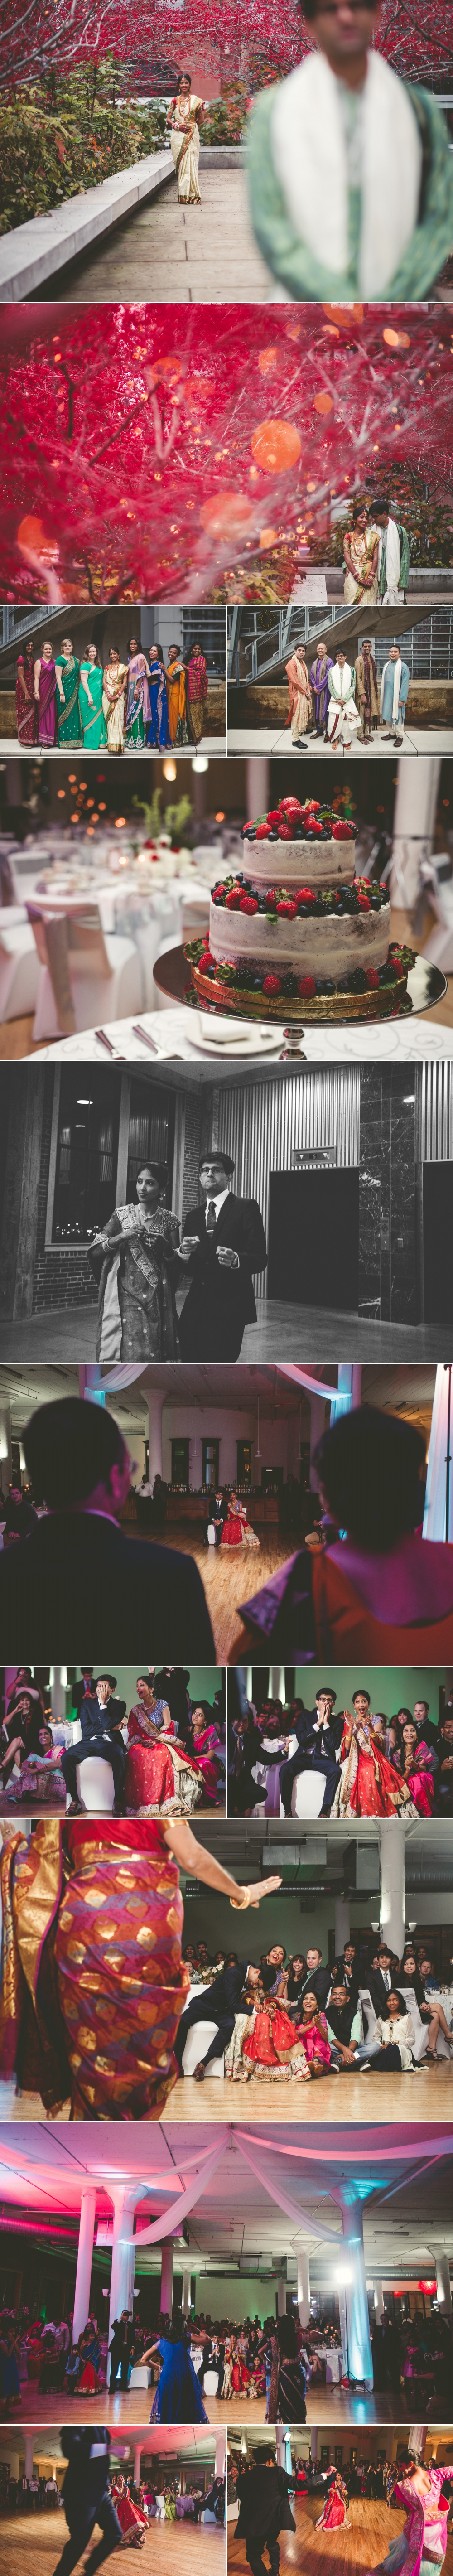 jason_domingues_photography_best_photographer_indian_wedding_st_louis_kansas_city_marriott_grand_7.jpg